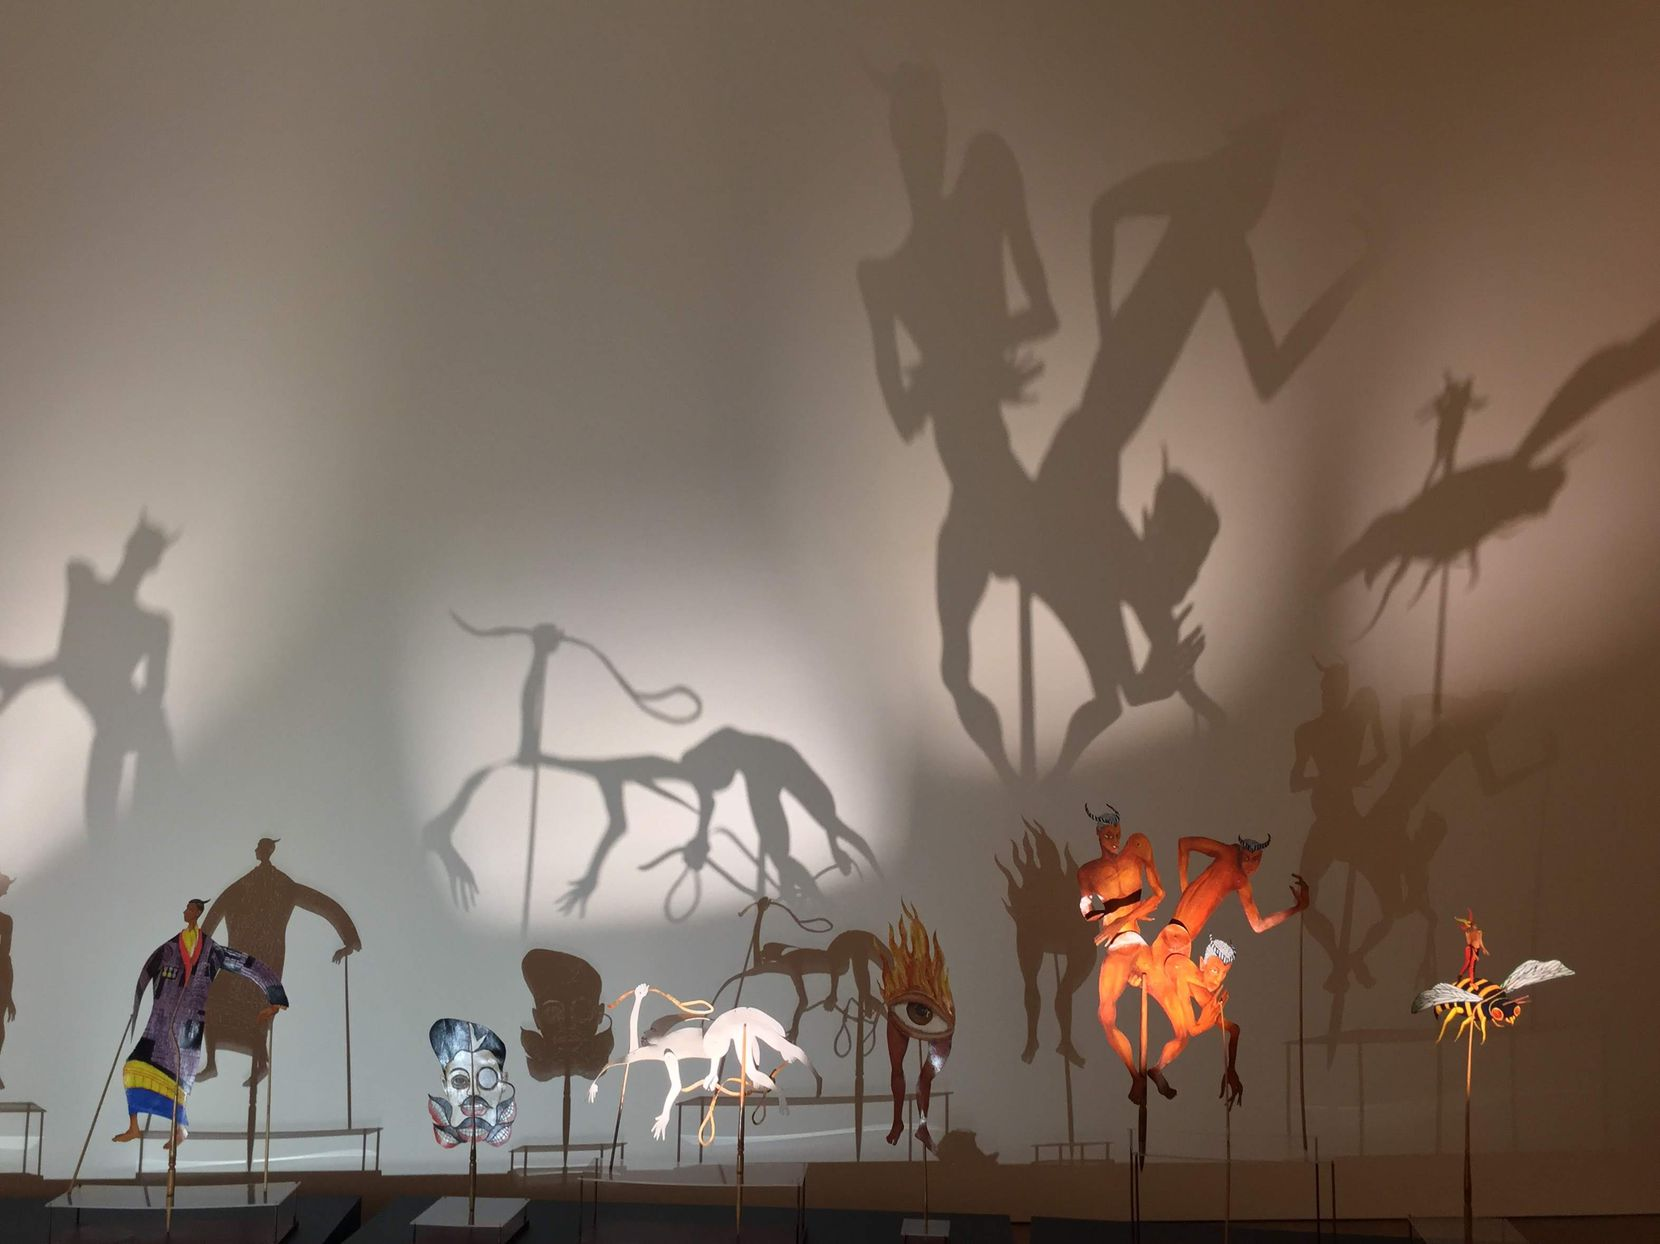 SCAD (Savannah College of Art and Design) Museum of Art fills an 1853 railroad depot with provocative works, including these shadow puppets.